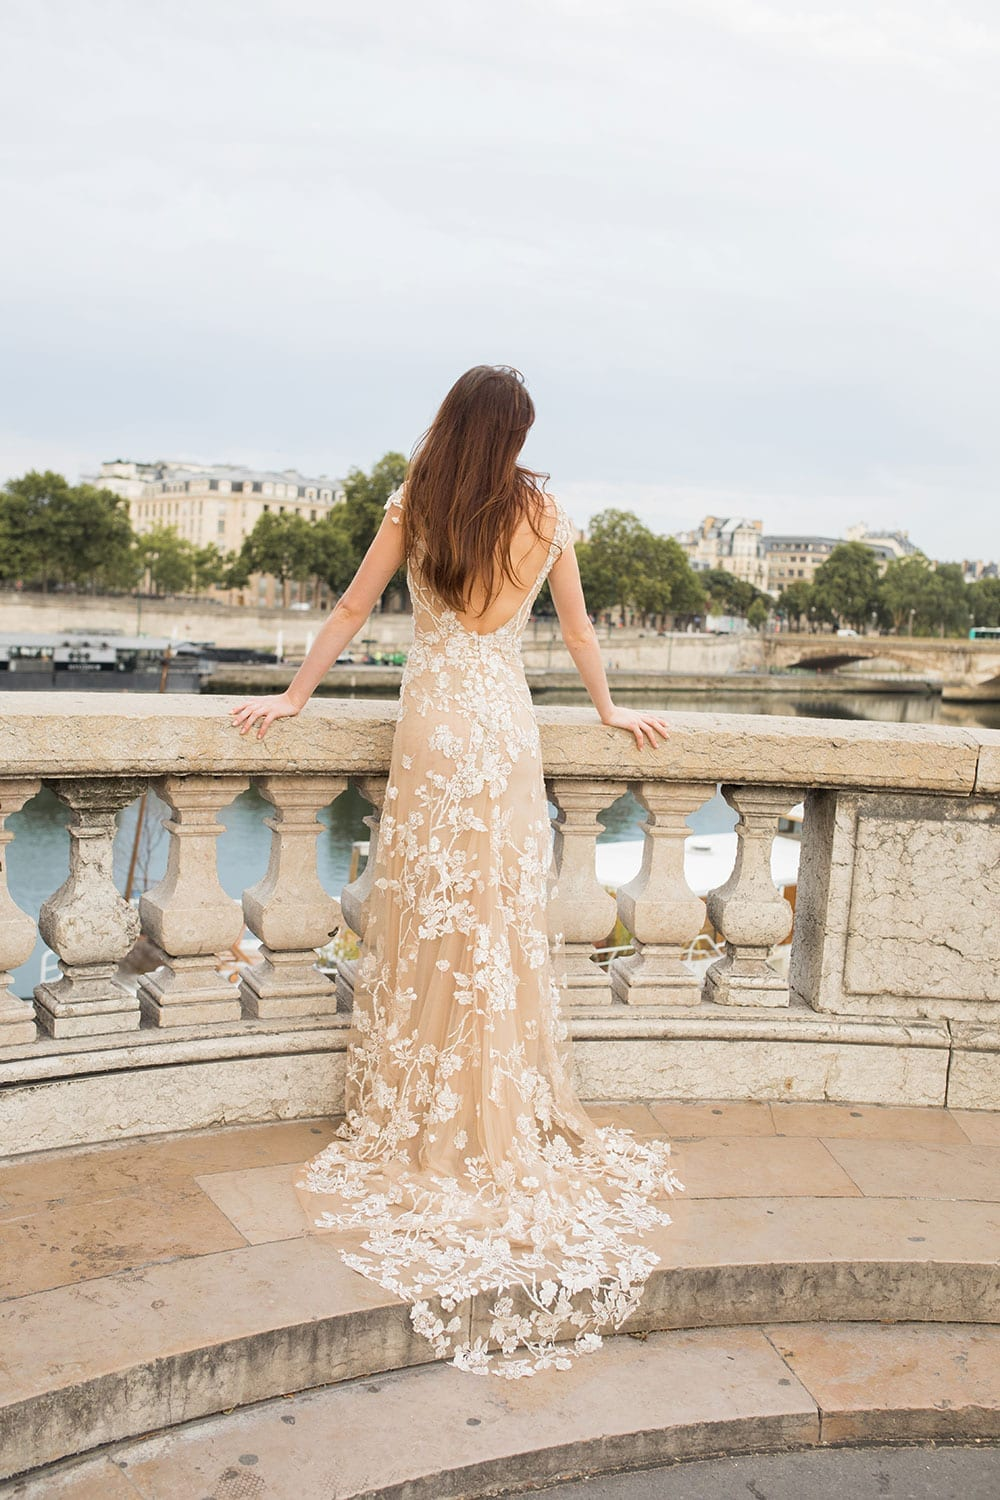 Model wearing Vinka Design Vianna Wedding Dress, a Low Back Beaded Wedding Gown with train looking out from a promenade in Paris